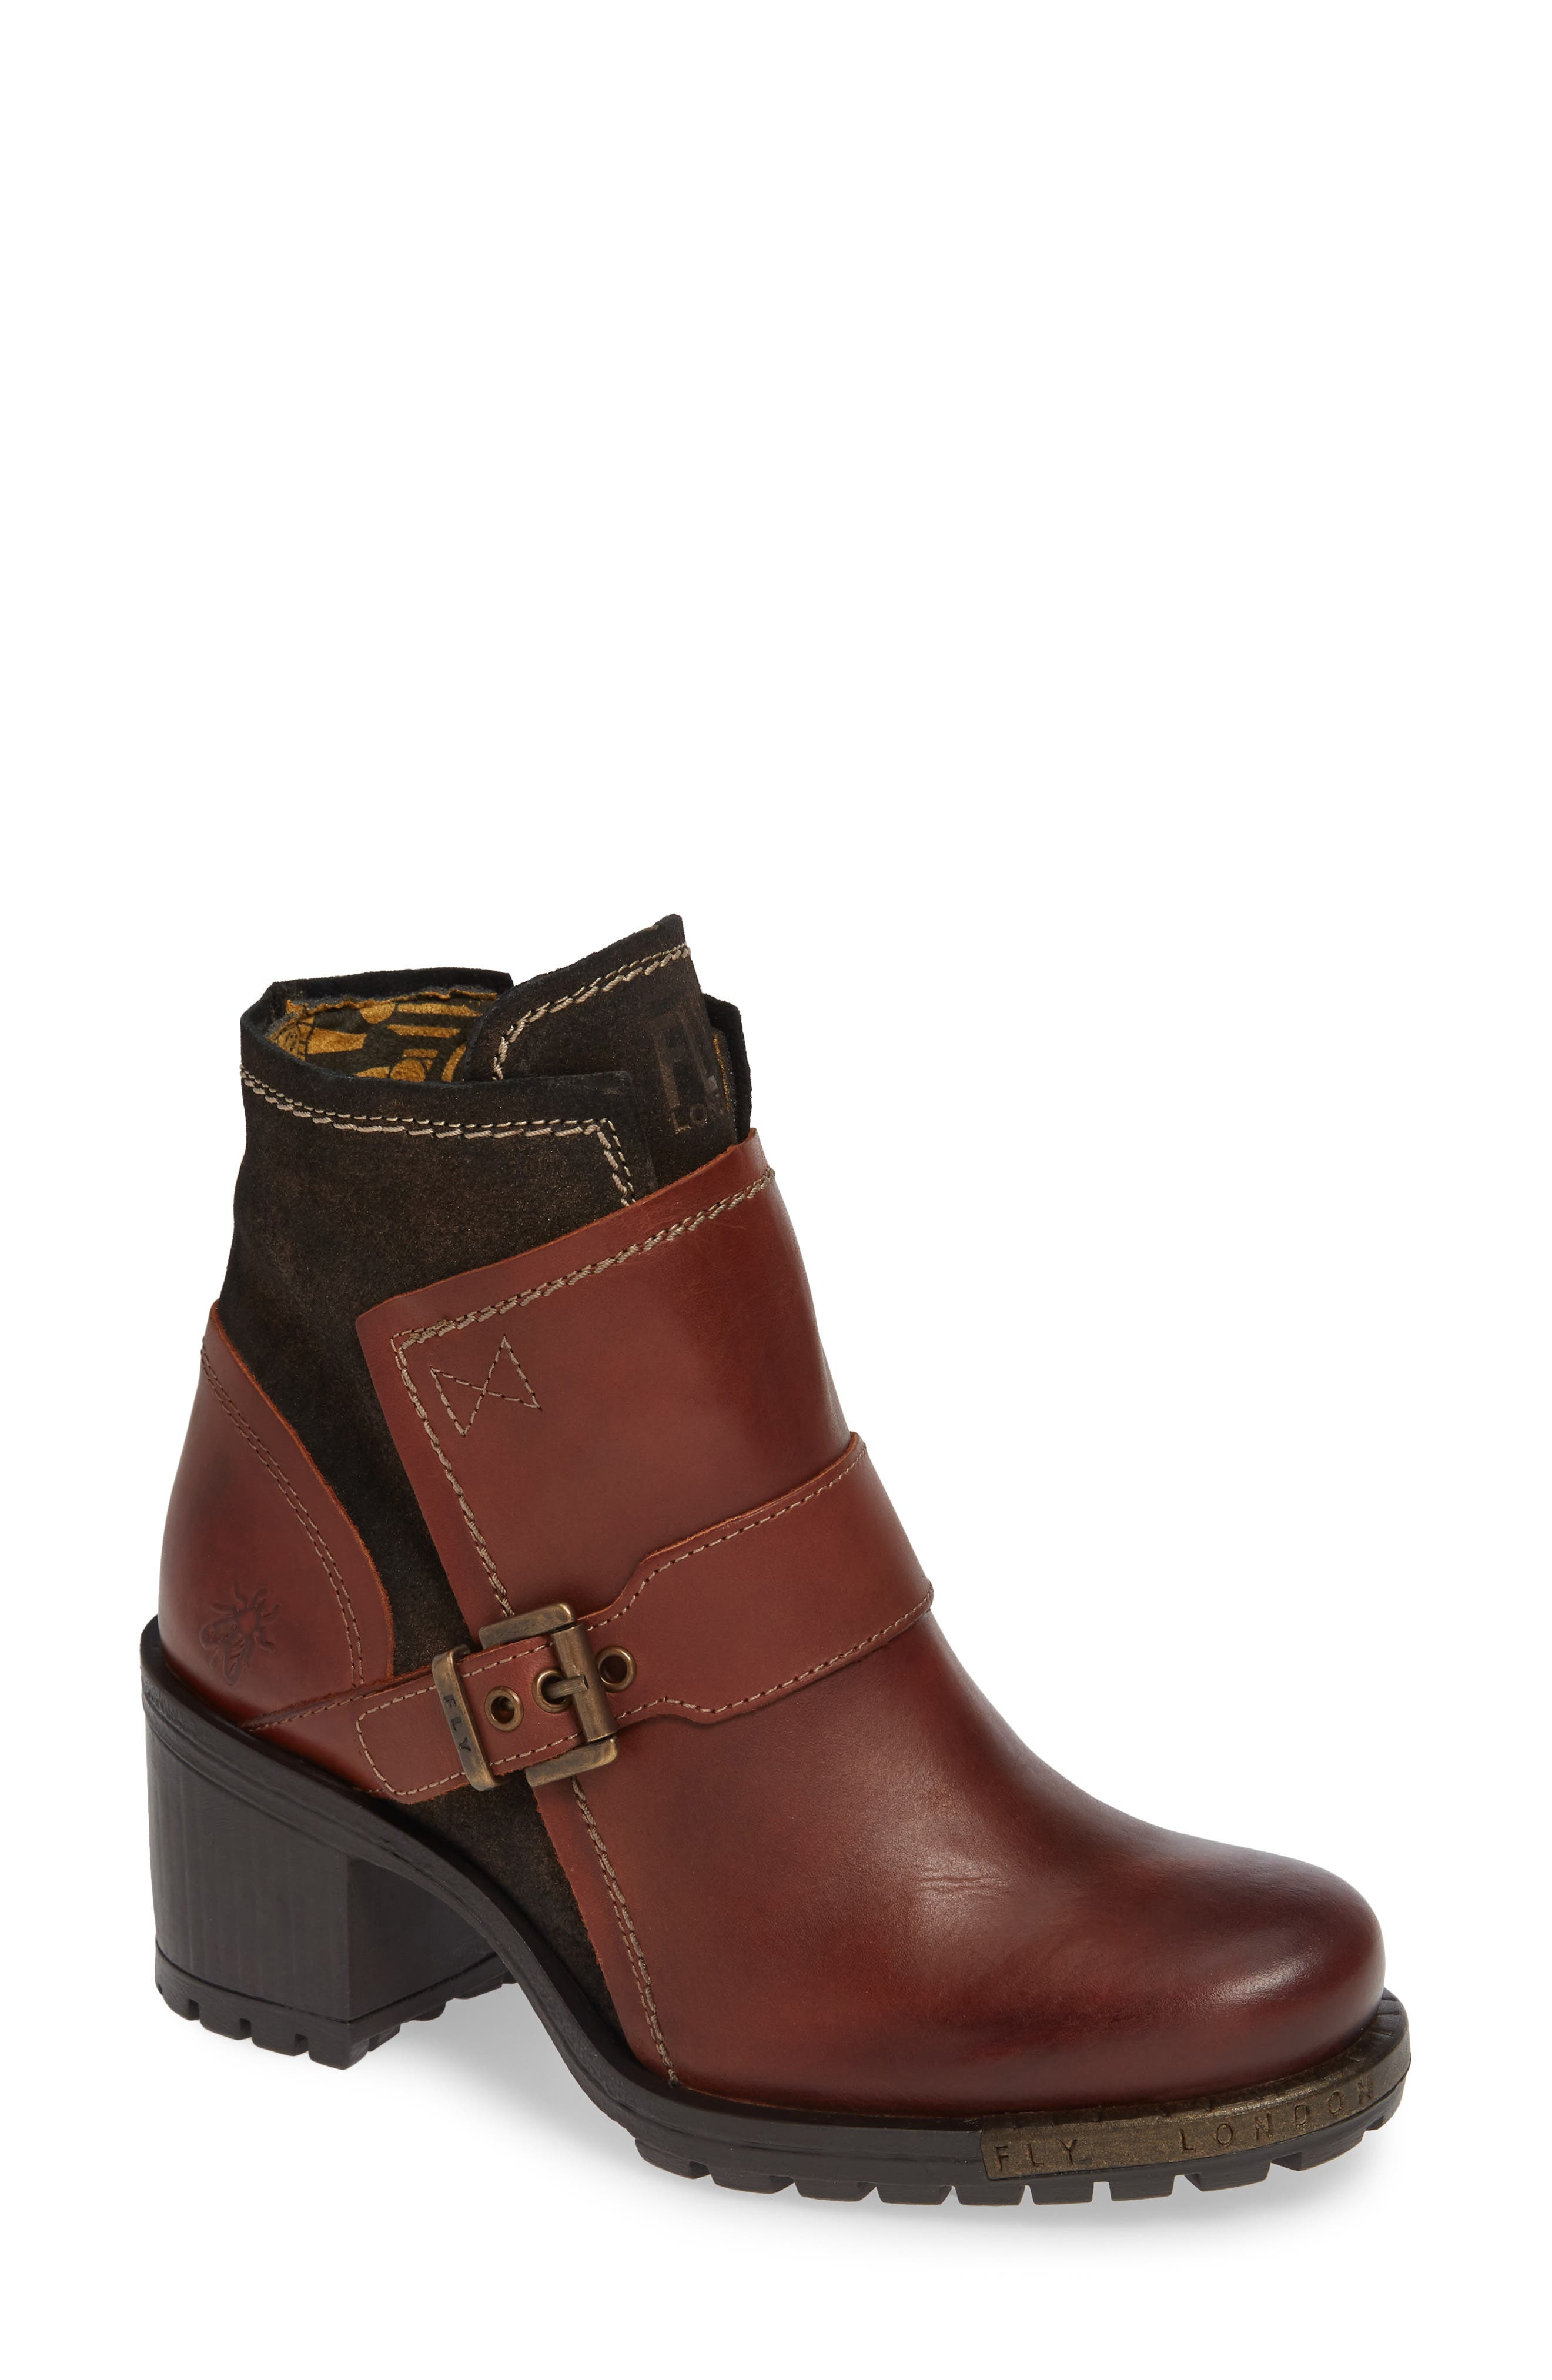 Fly London Labe Bootie